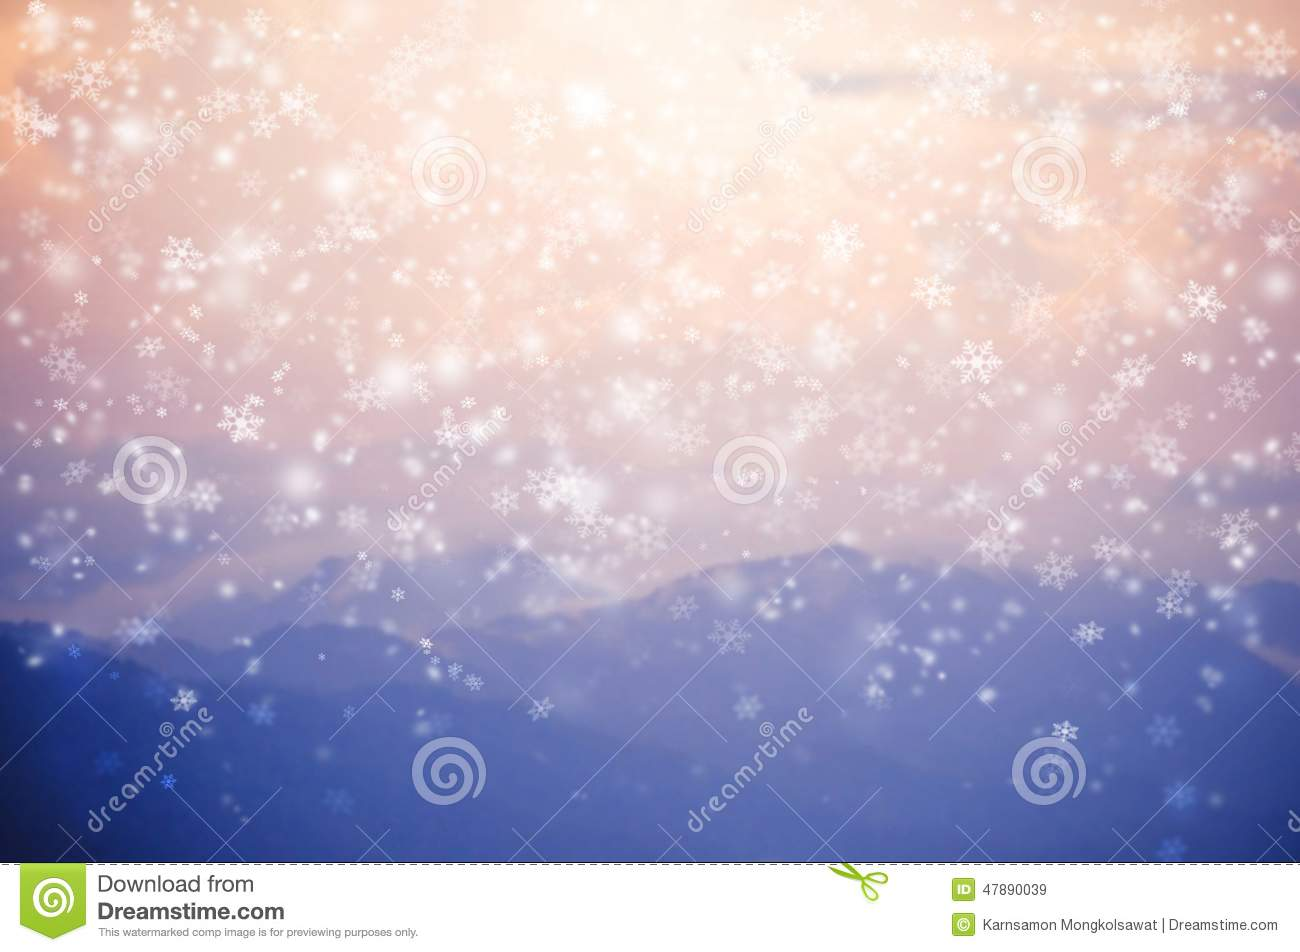 Top Wallpaper Mountain Blurry - blurred-background-snow-falling-blue-mountain-flakes-pink-sky-scene-47890039  You Should Have_187870.jpg